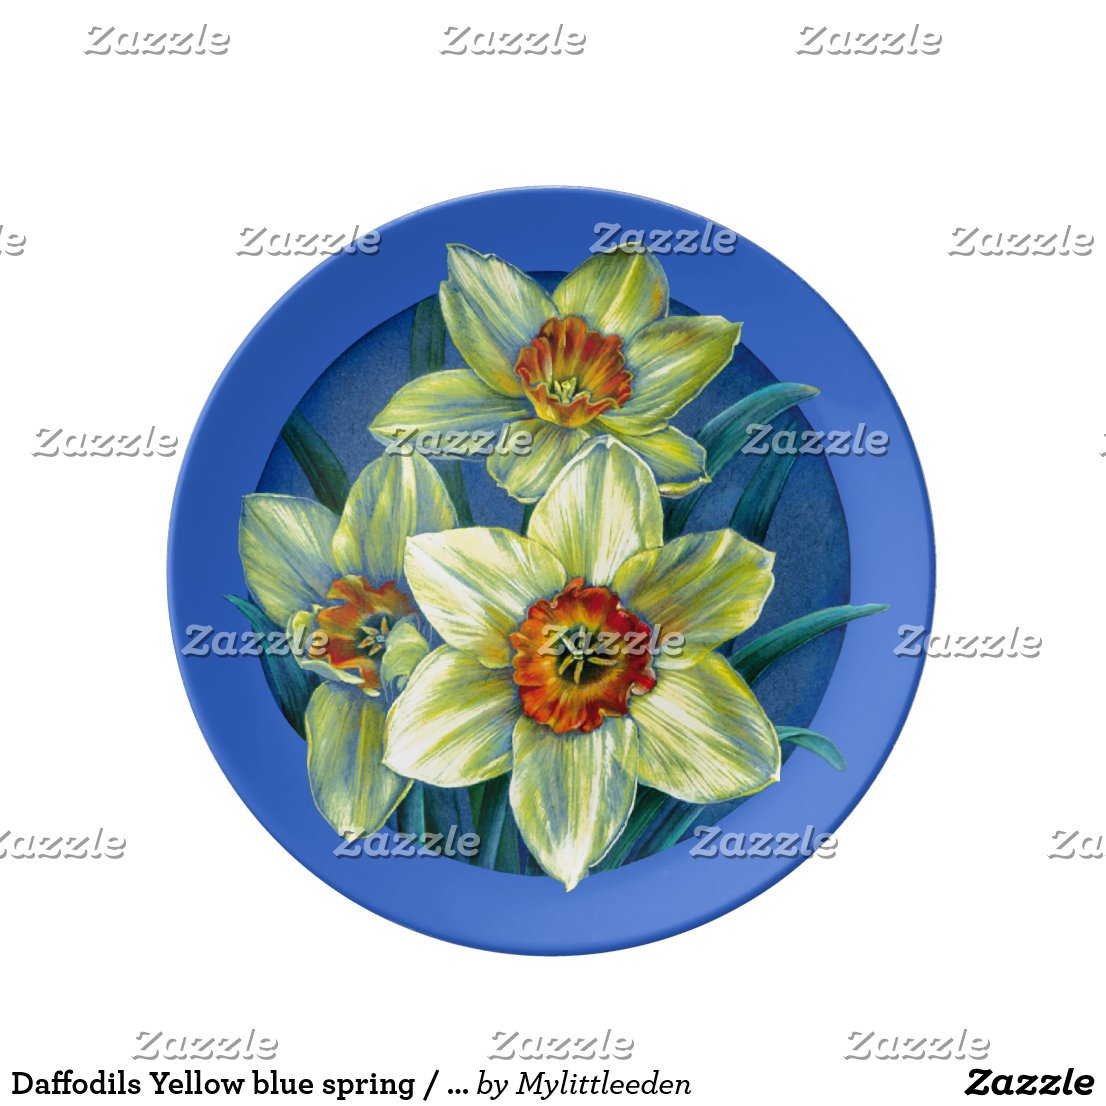 Daffodils Yellow blue spring / easter plate